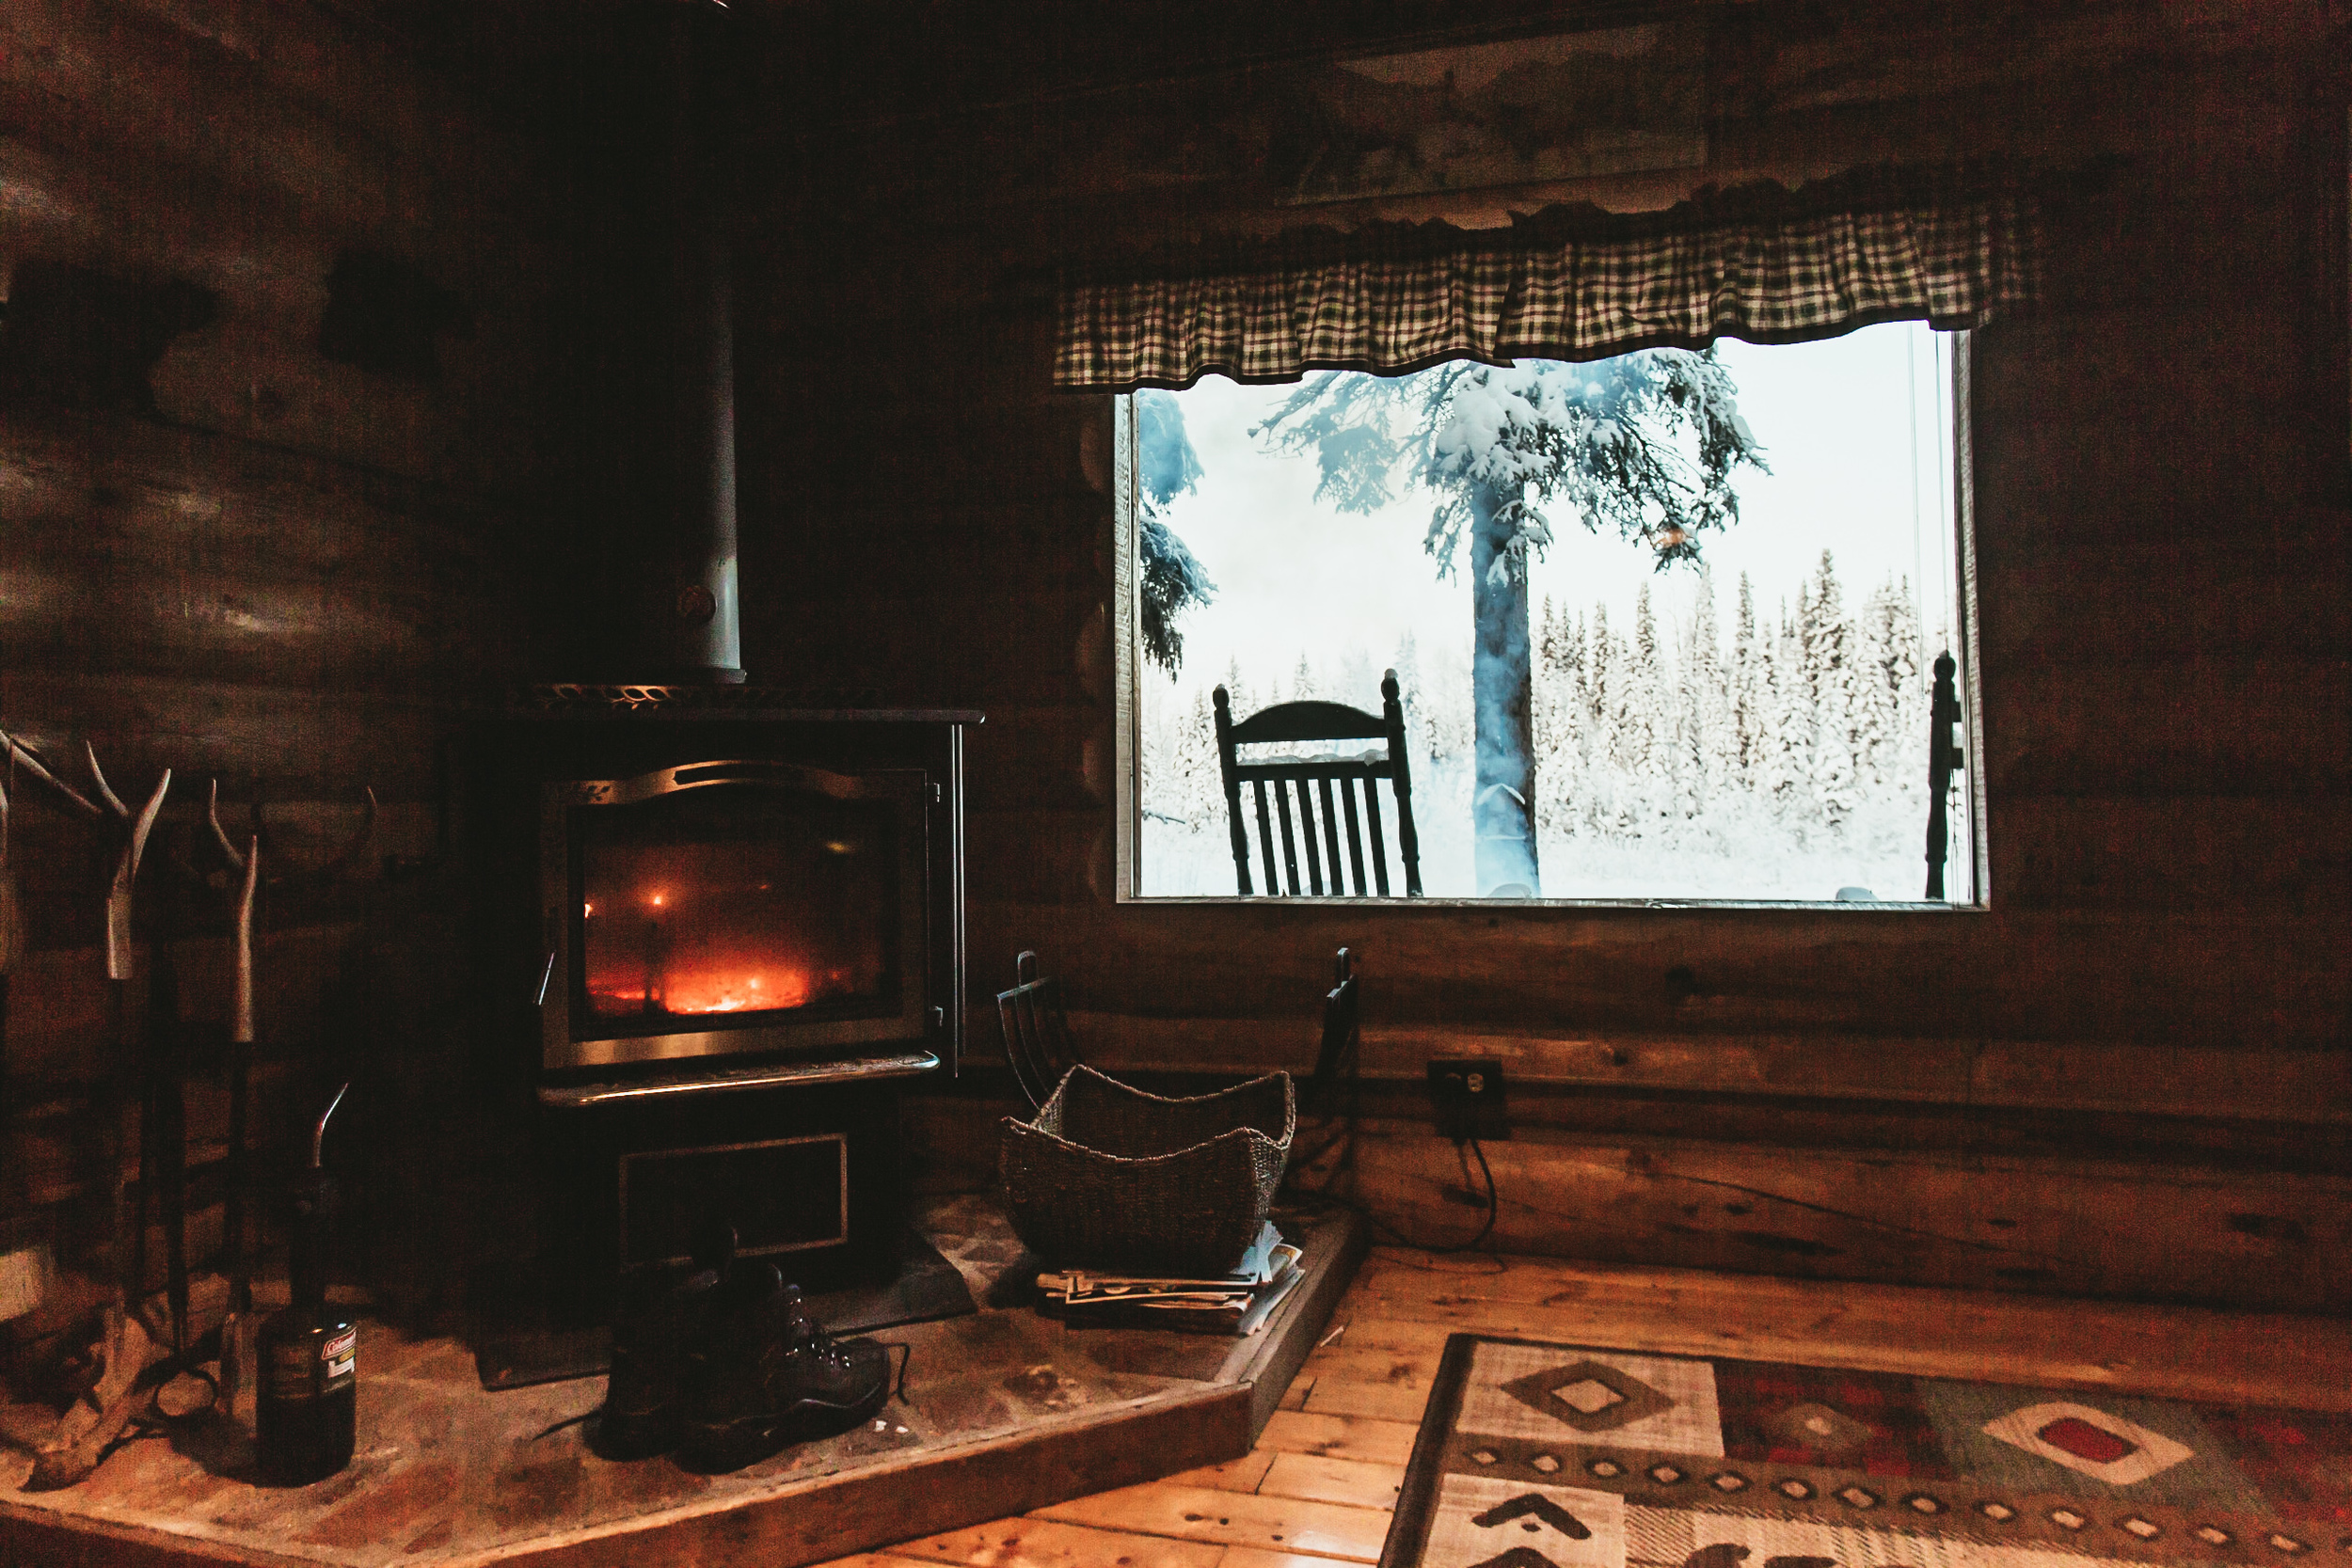 As soon as your enter the cabin, you're greeted with a fireplace and a view into the backyard.